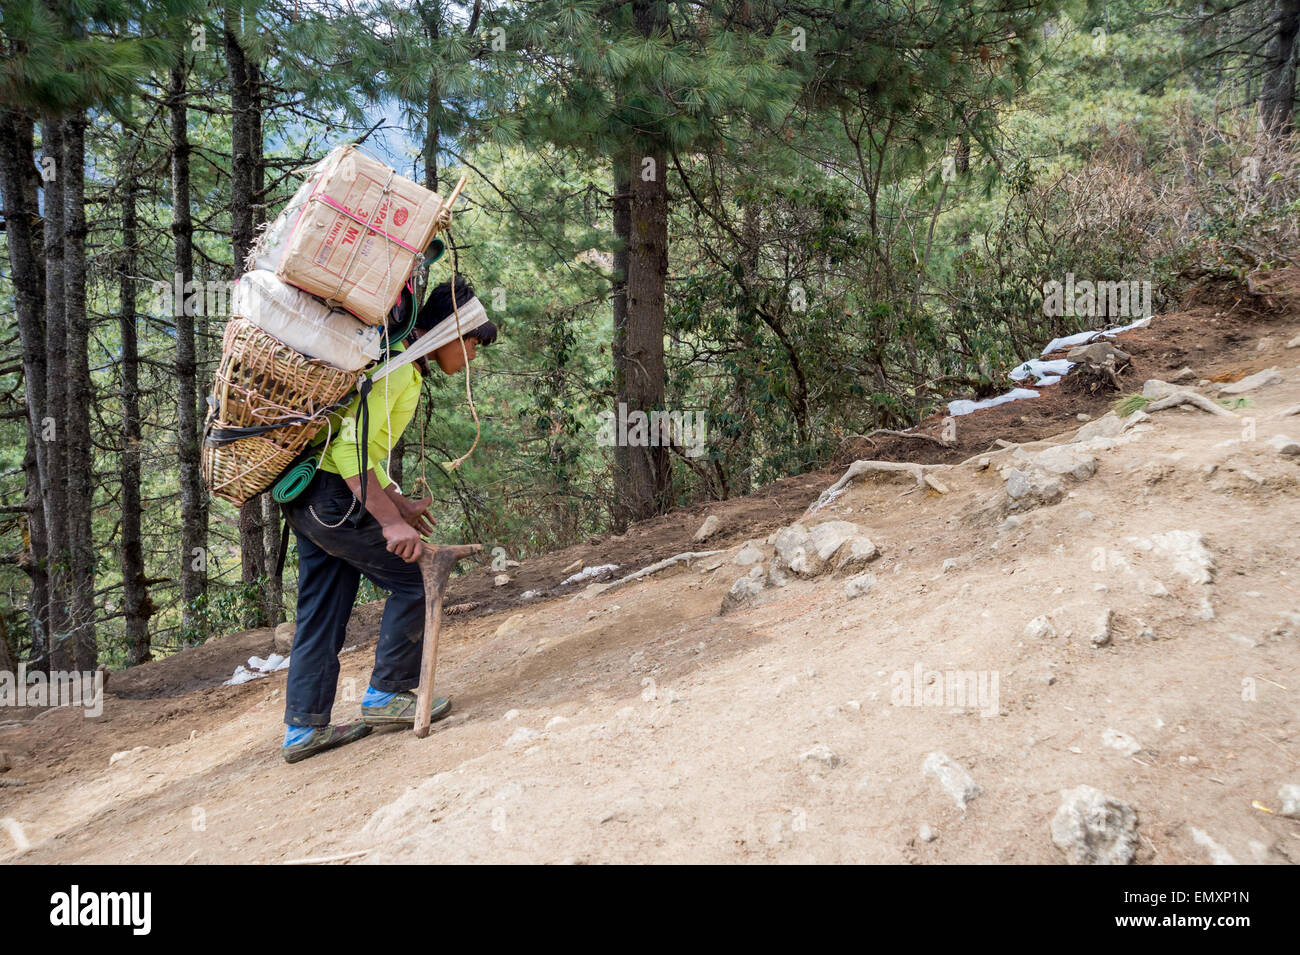 Lateral view of a Nepalese porter, carrying a heavy load, on his way to Namche Bazaar, Nepal - Stock Image